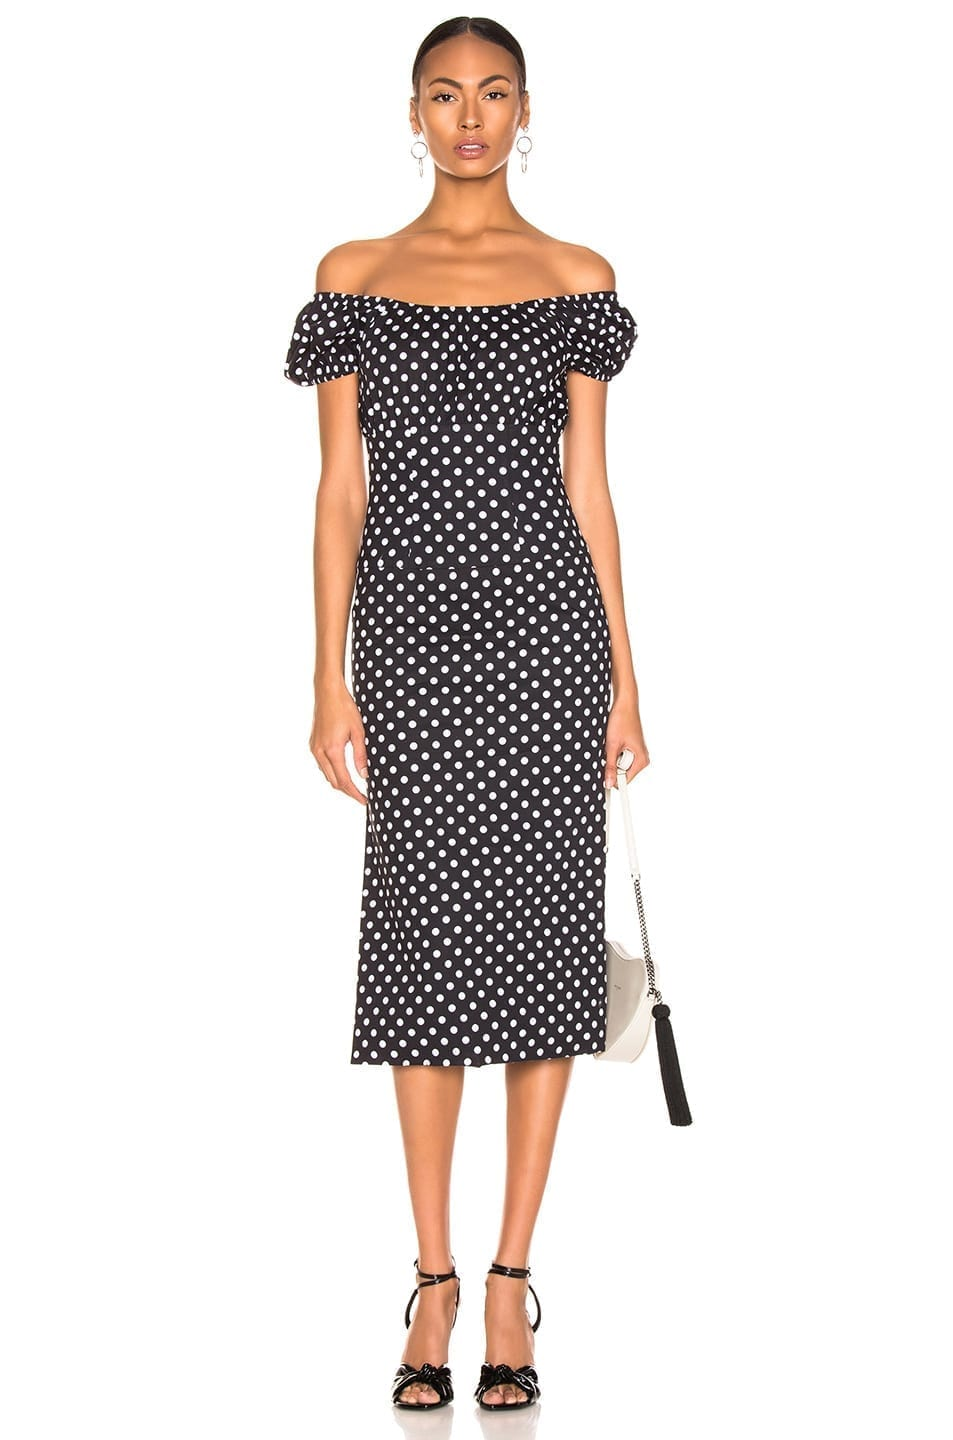 CAROLINE CONSTAS Calla Black / White Dress